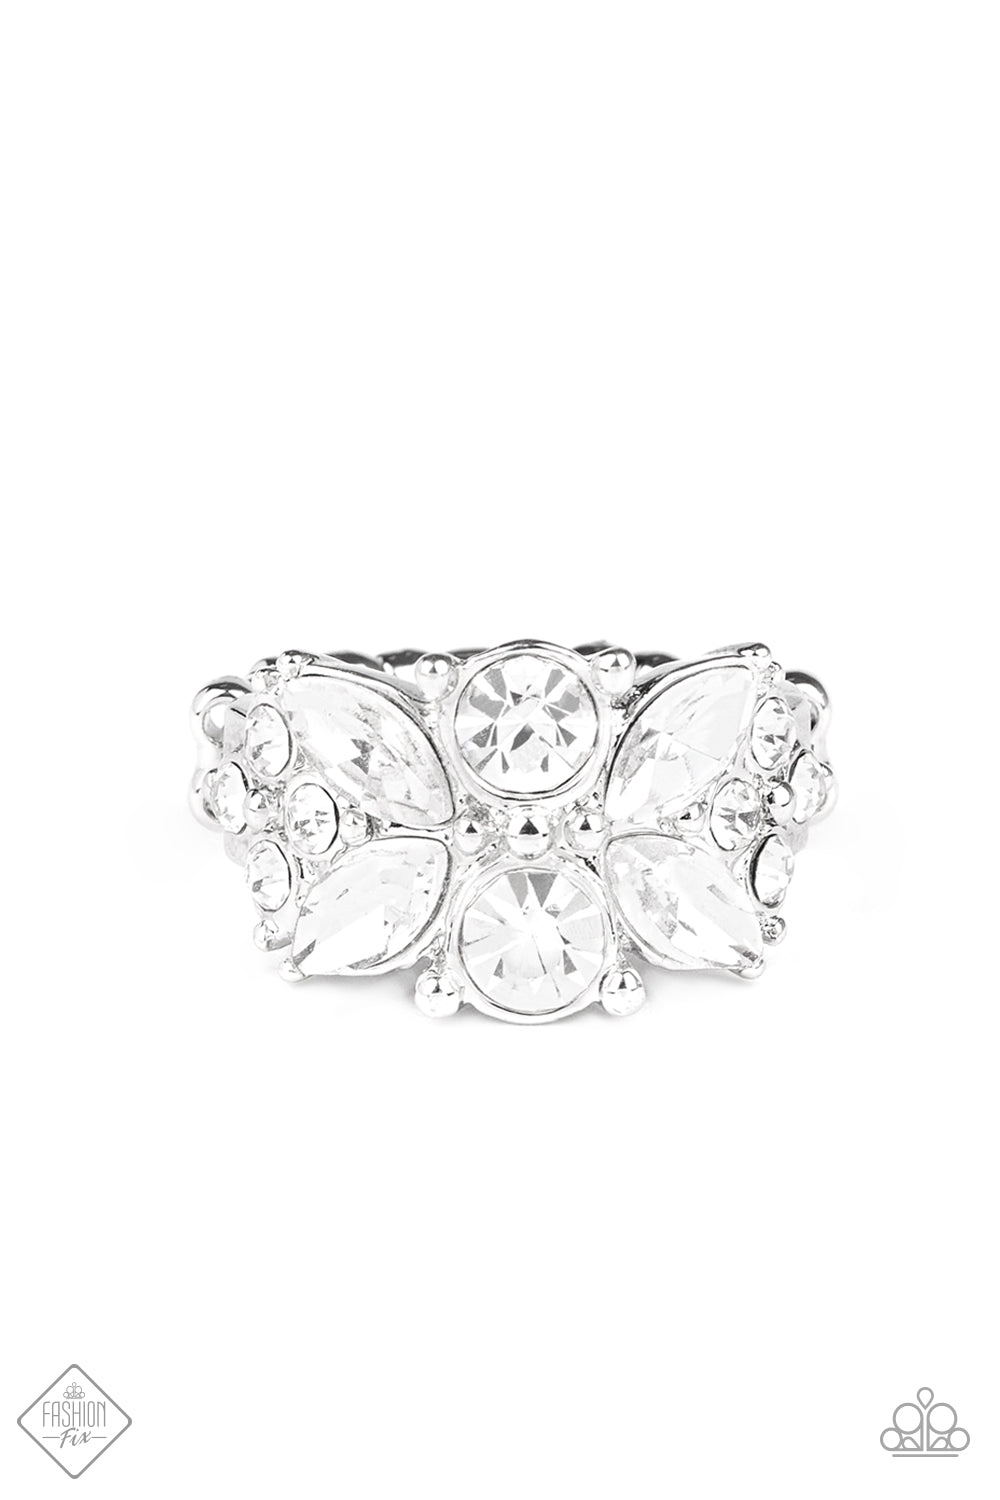 Paparazzi Ring ~ Sparkly State of Mind - White - Fashion Fix Sept 2020